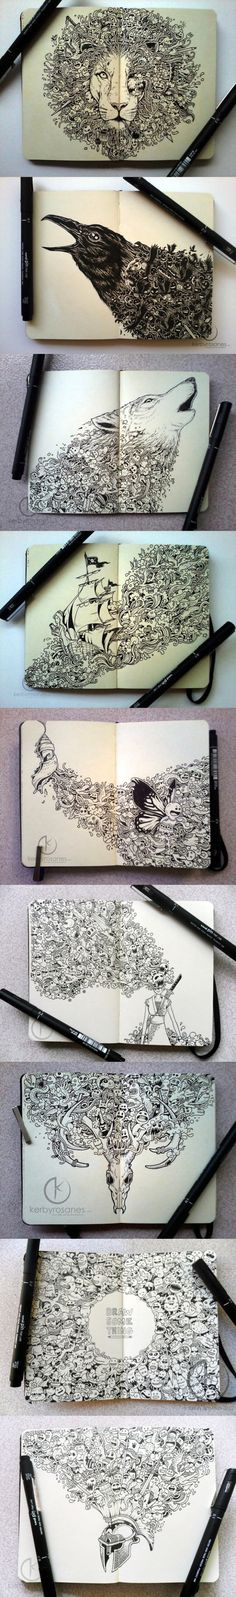 Incredible Moleskine drawings...